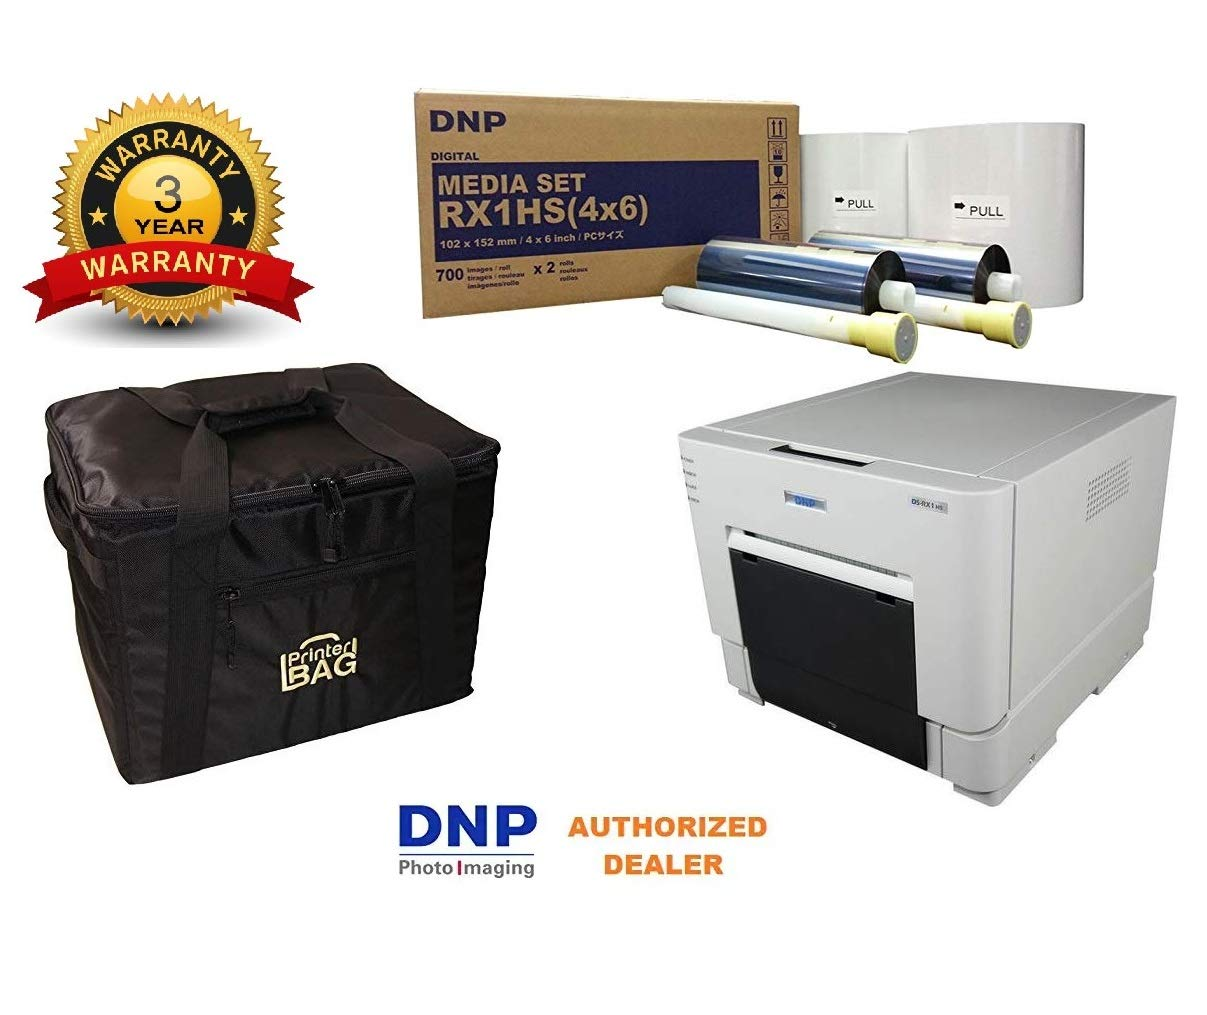 DNP DS-RX1HS Photo Printer.. BUNDLE DEAL. Comes with our exclusive CARRYING CASE and 1 BOX OF 4X6'' media kit paper & ribbon (1400 prints). THREE YEAR WARRANTY INCLUDED!!! Authorized Dealer. by DNP